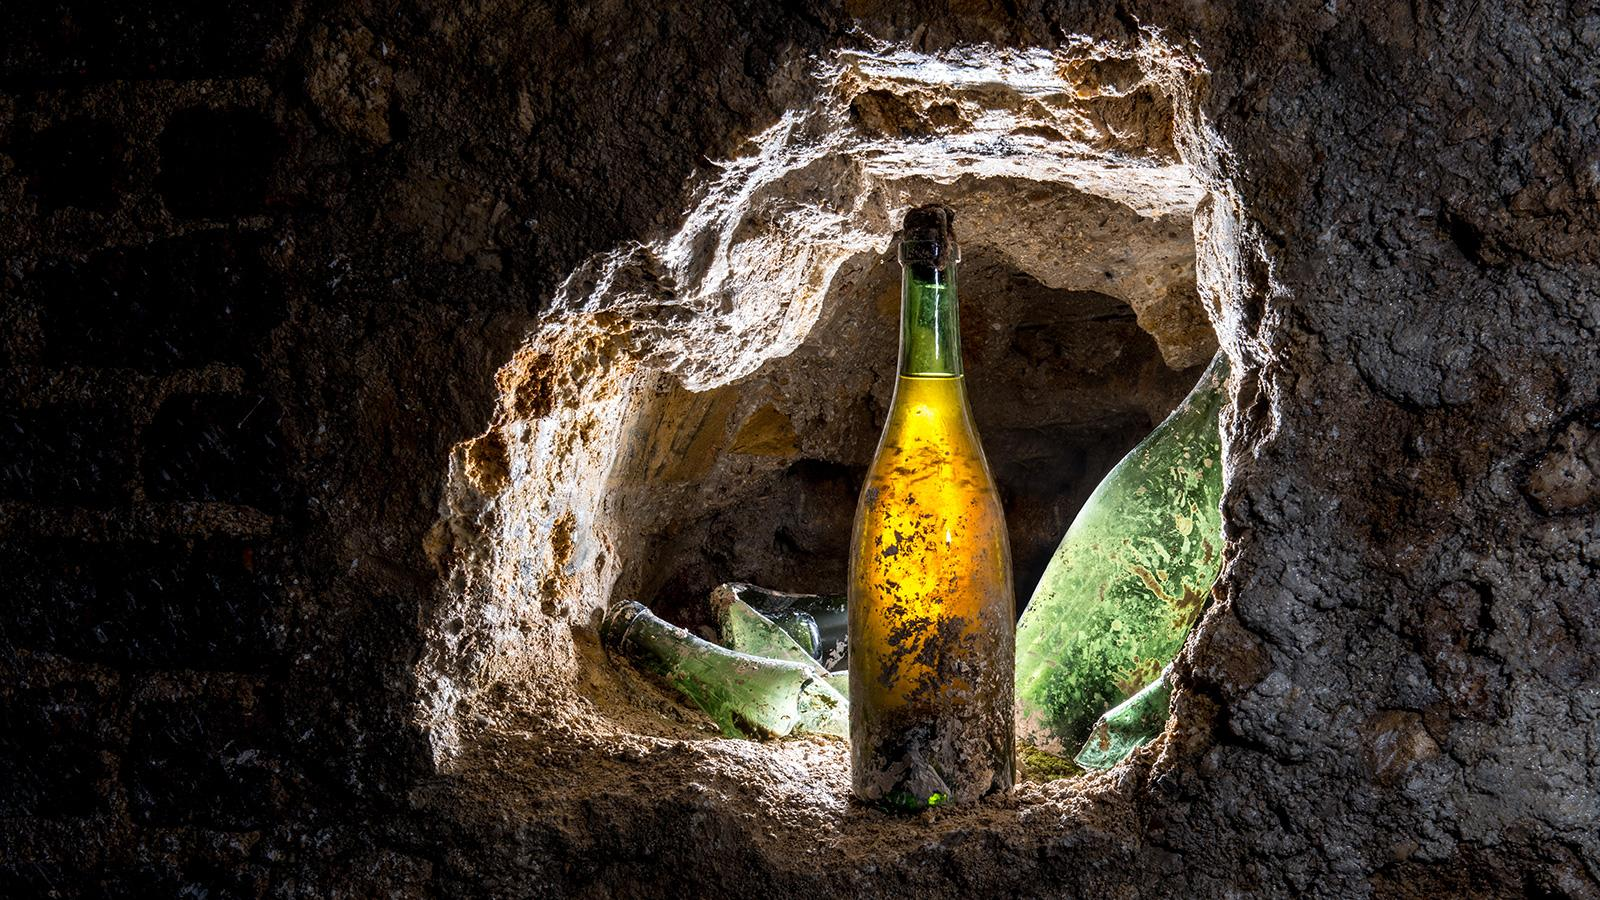 Exclusive: Buried Bubbly Could Be Buried Treasure